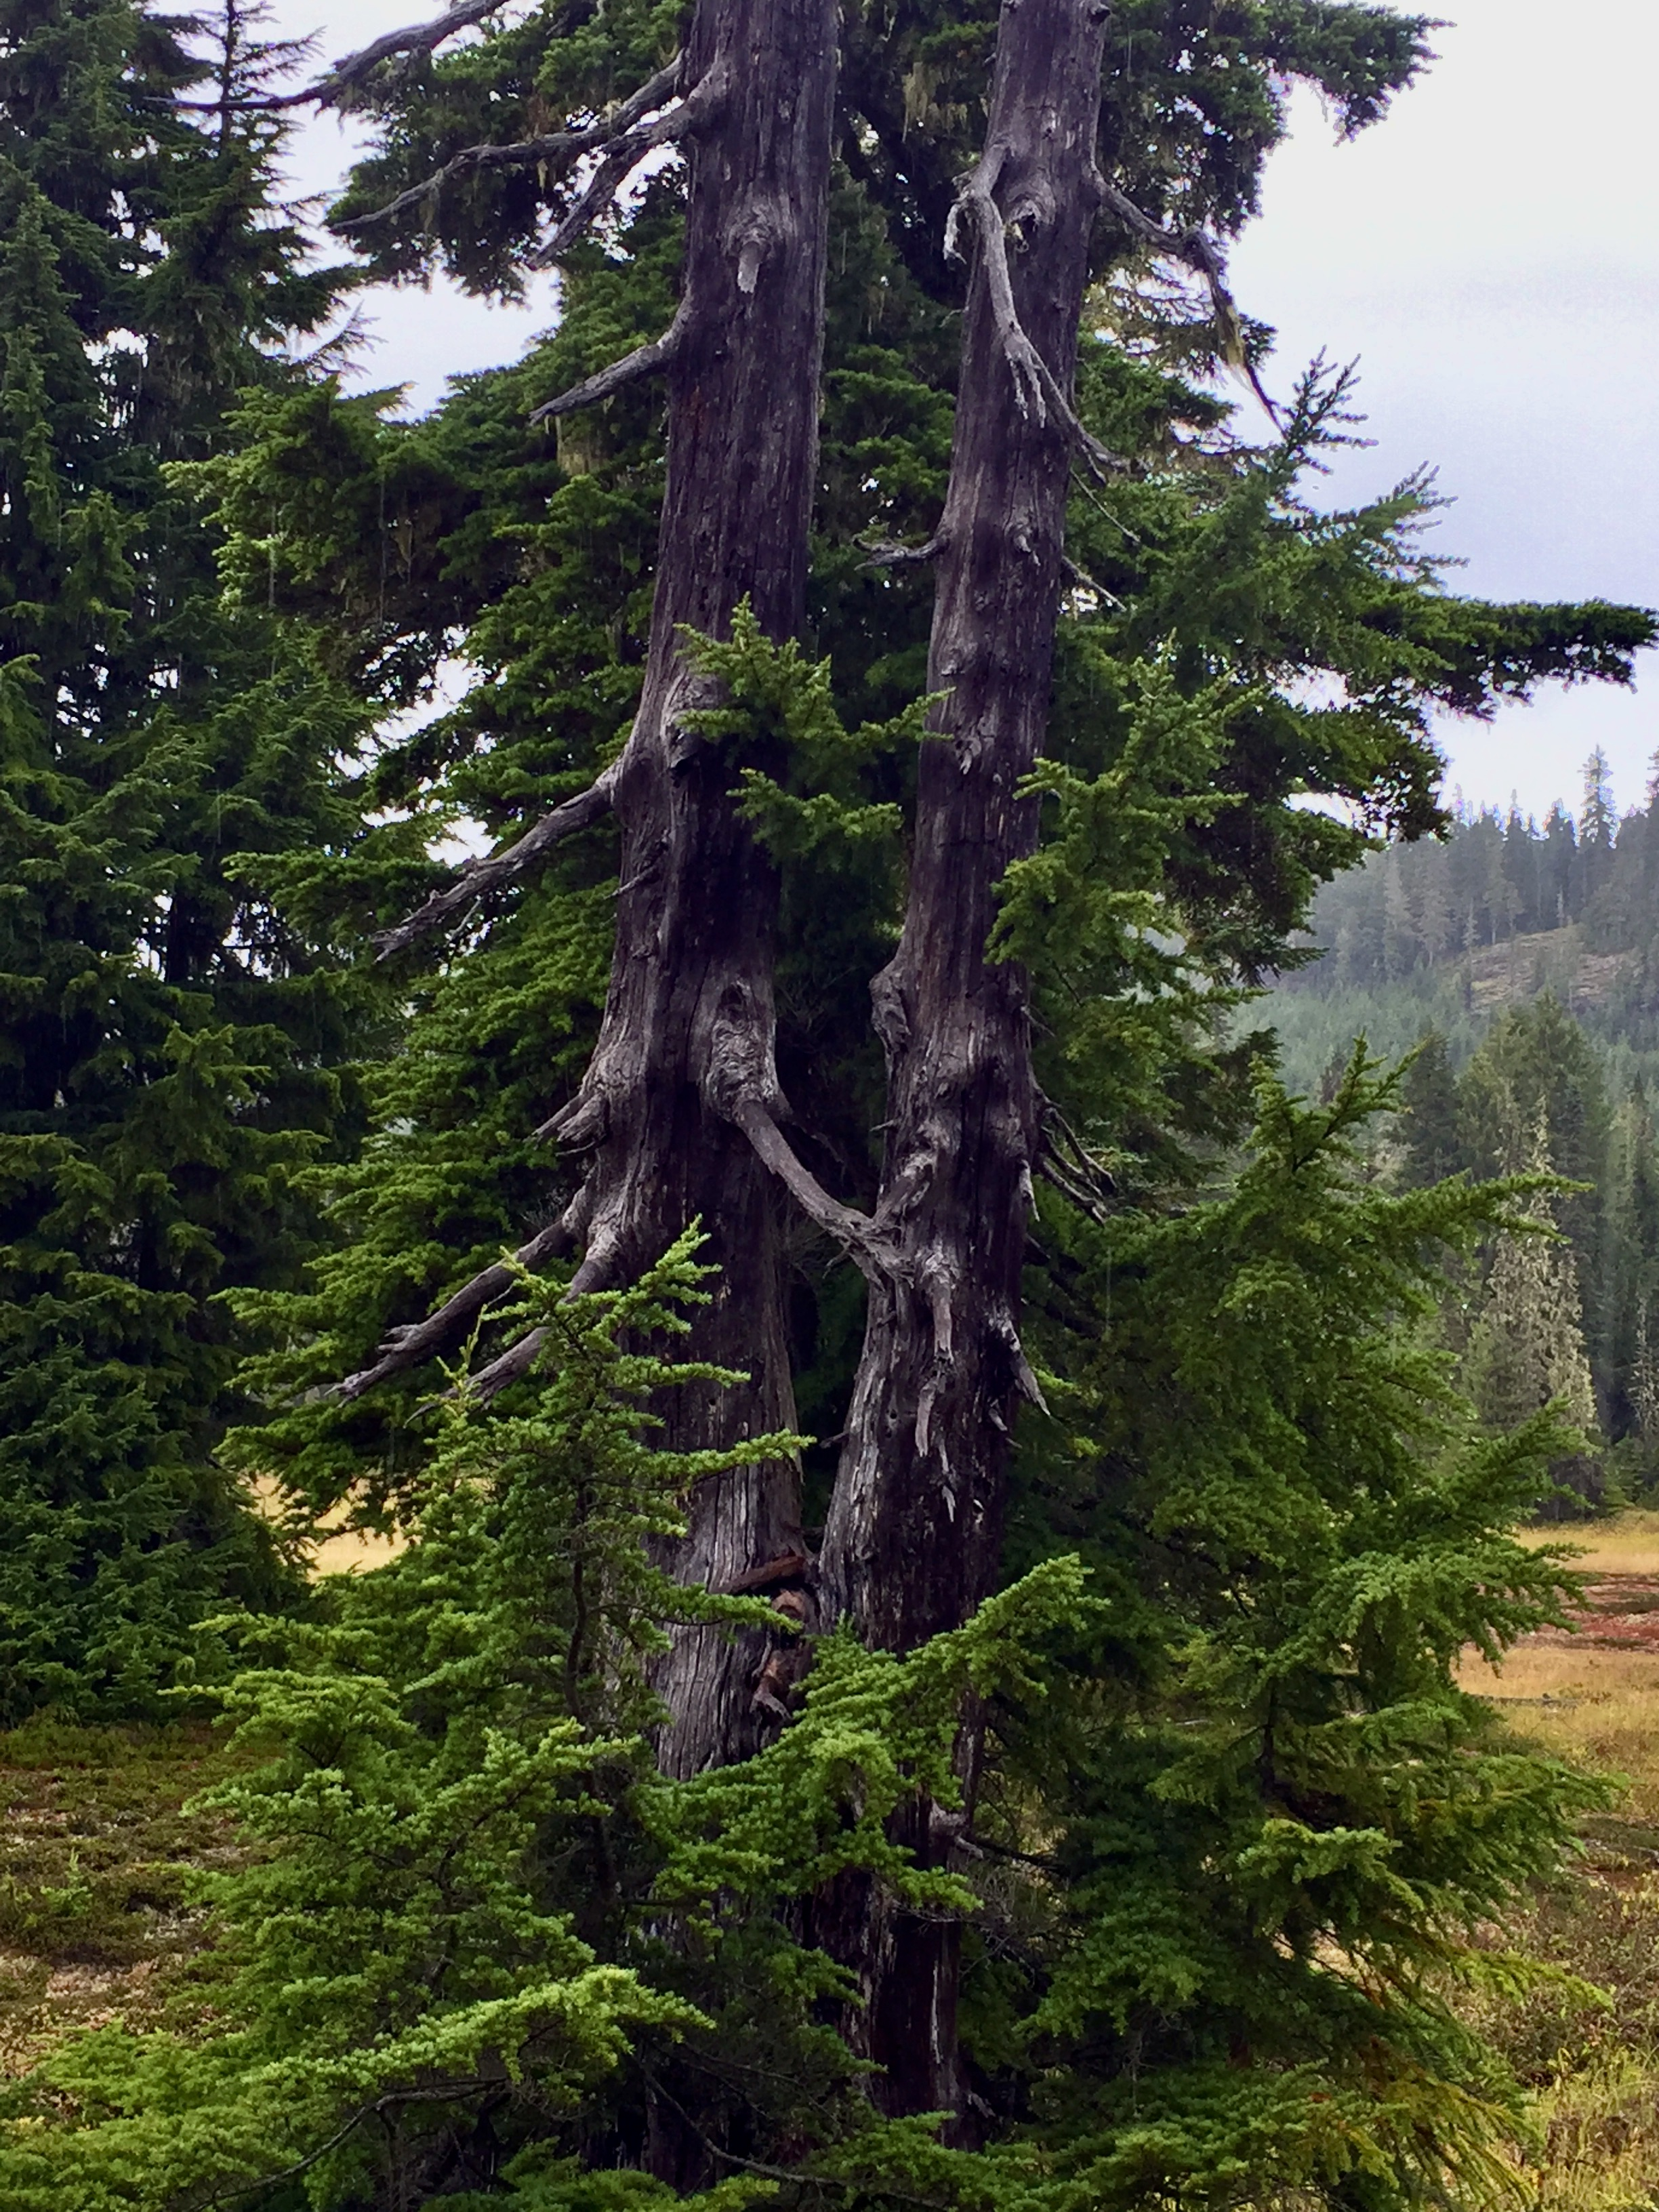 September, 2020 - Vancouver Island, British Columbia - Strathcona Provincial Park - Forbidden Plateau - Interesting trees!